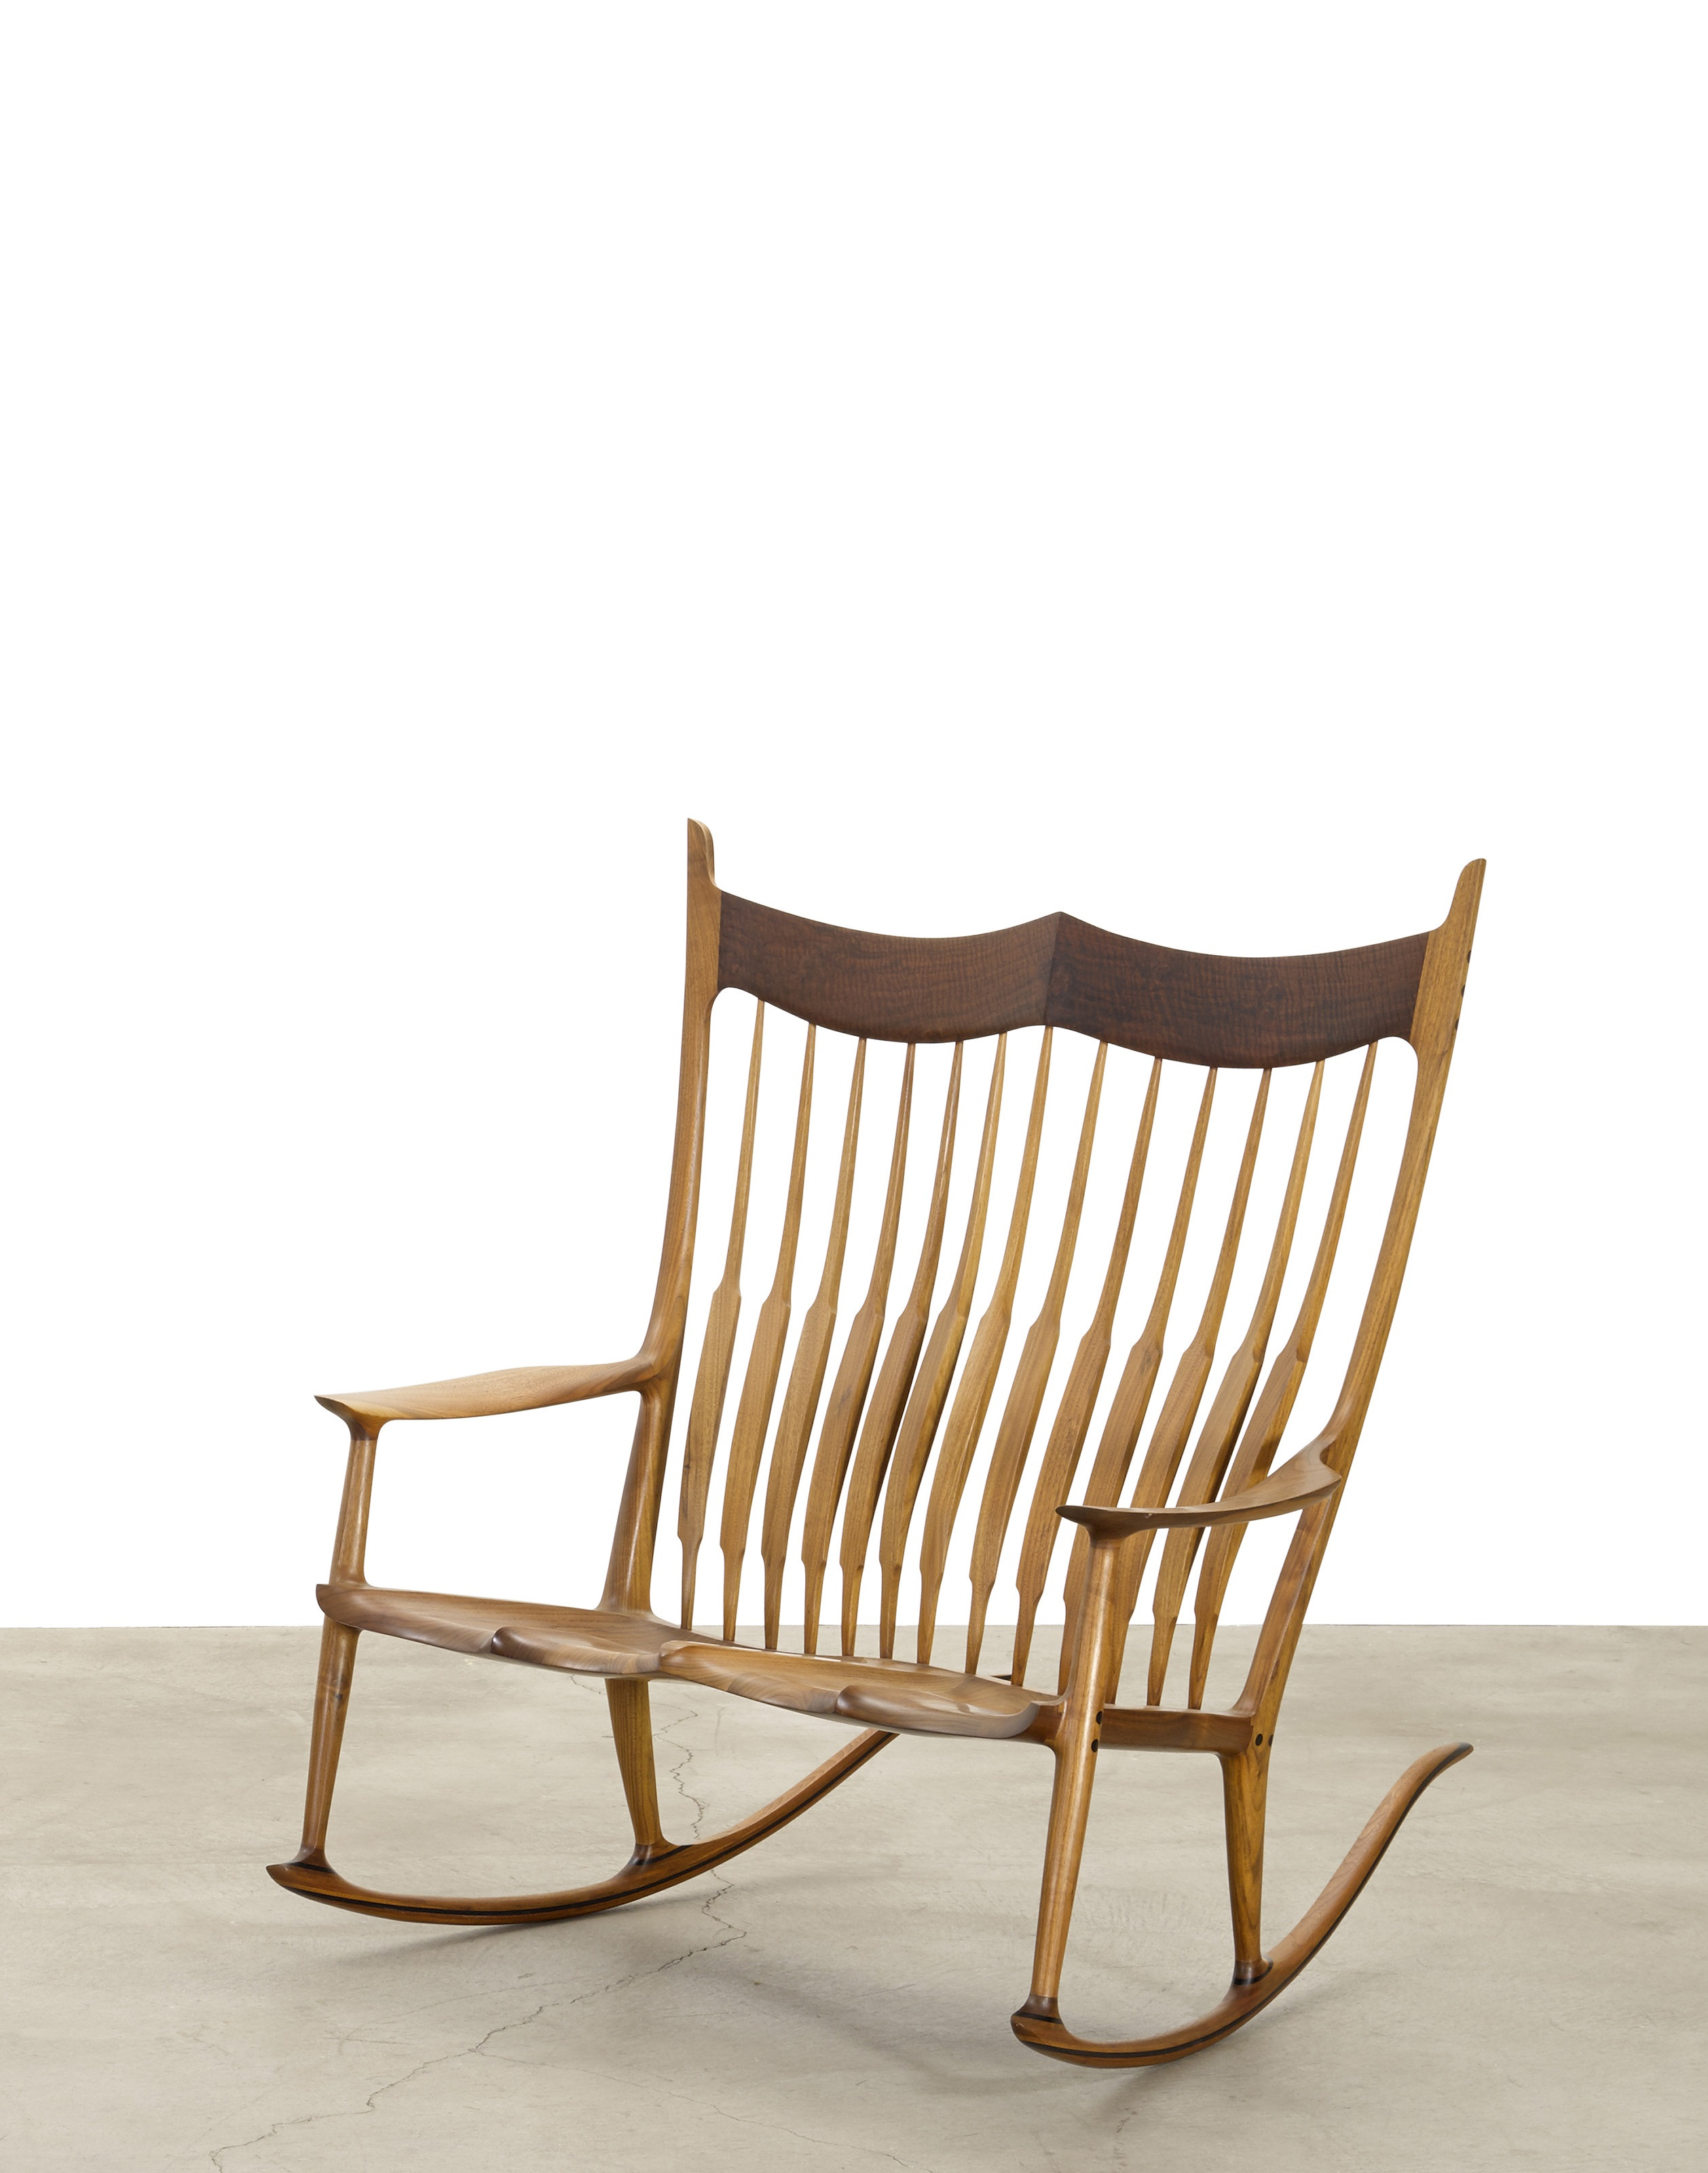 Beau Update: The Sam Maloof Double Rocker Sold For $35,000.